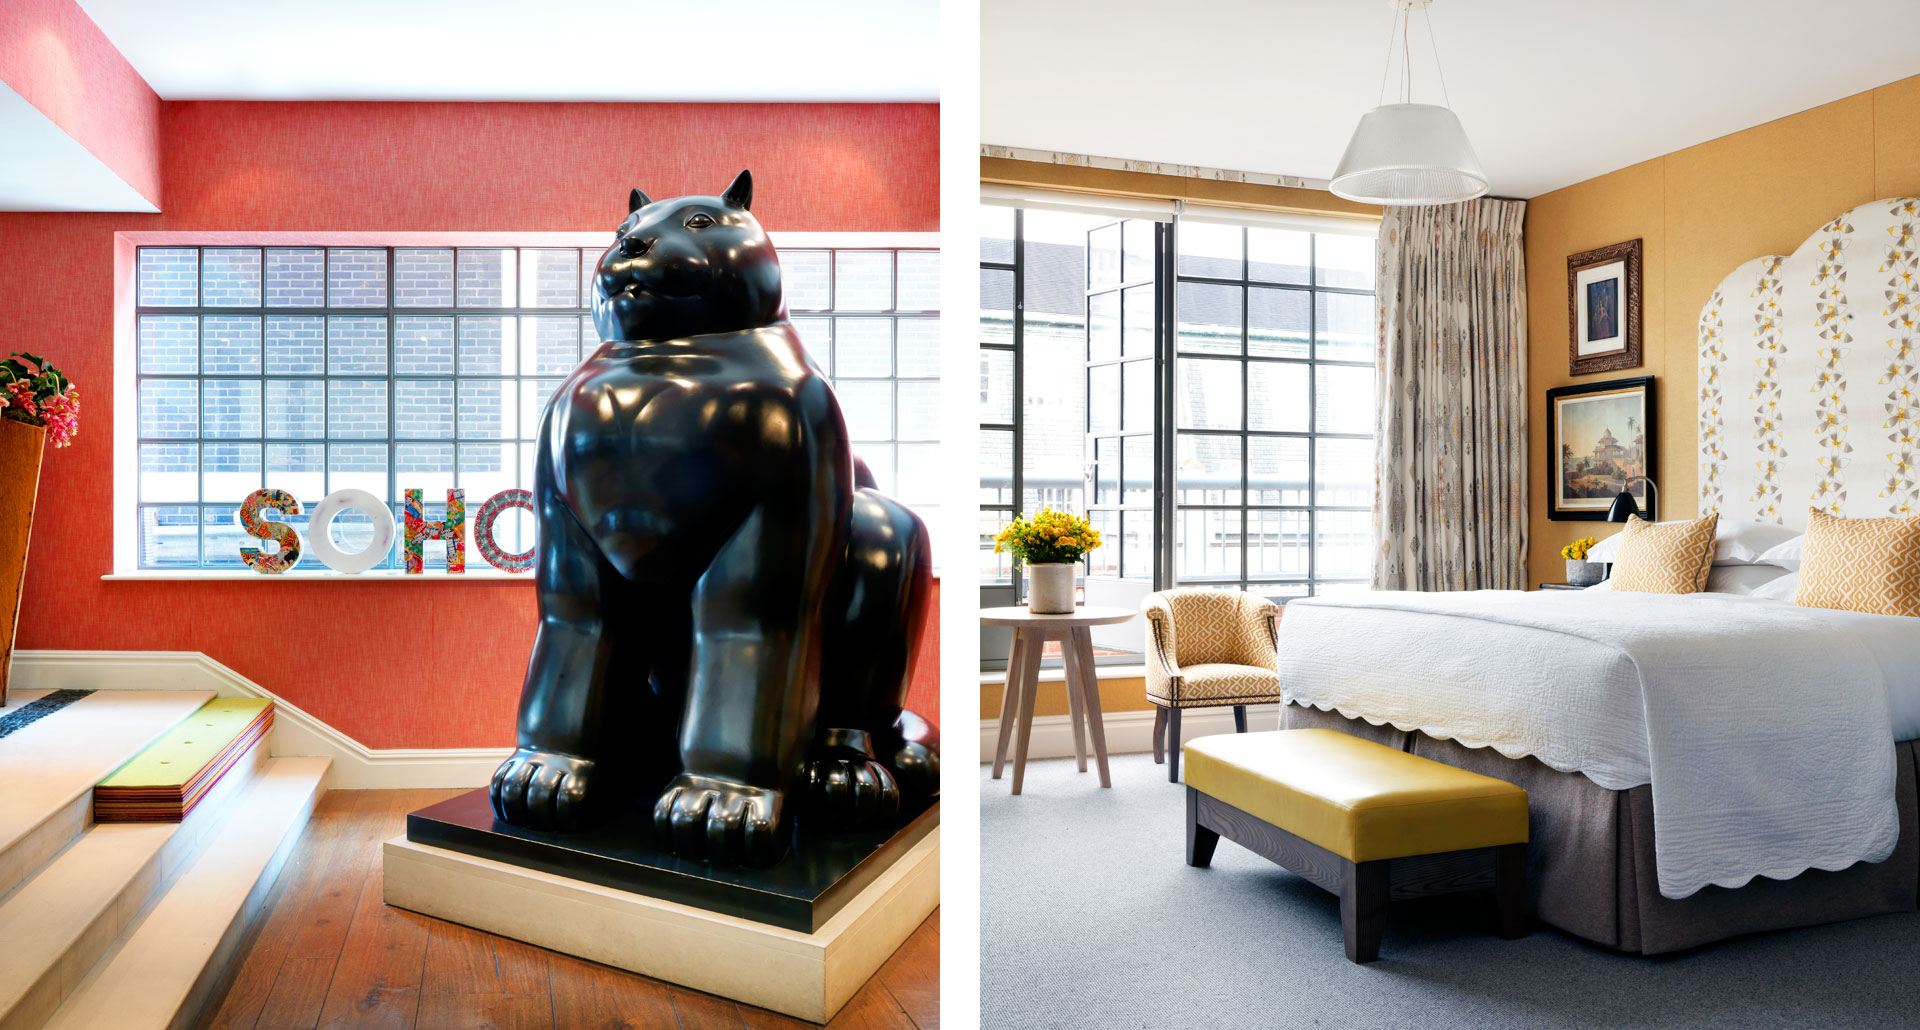 The Soho Hotel - boutique hotel in London